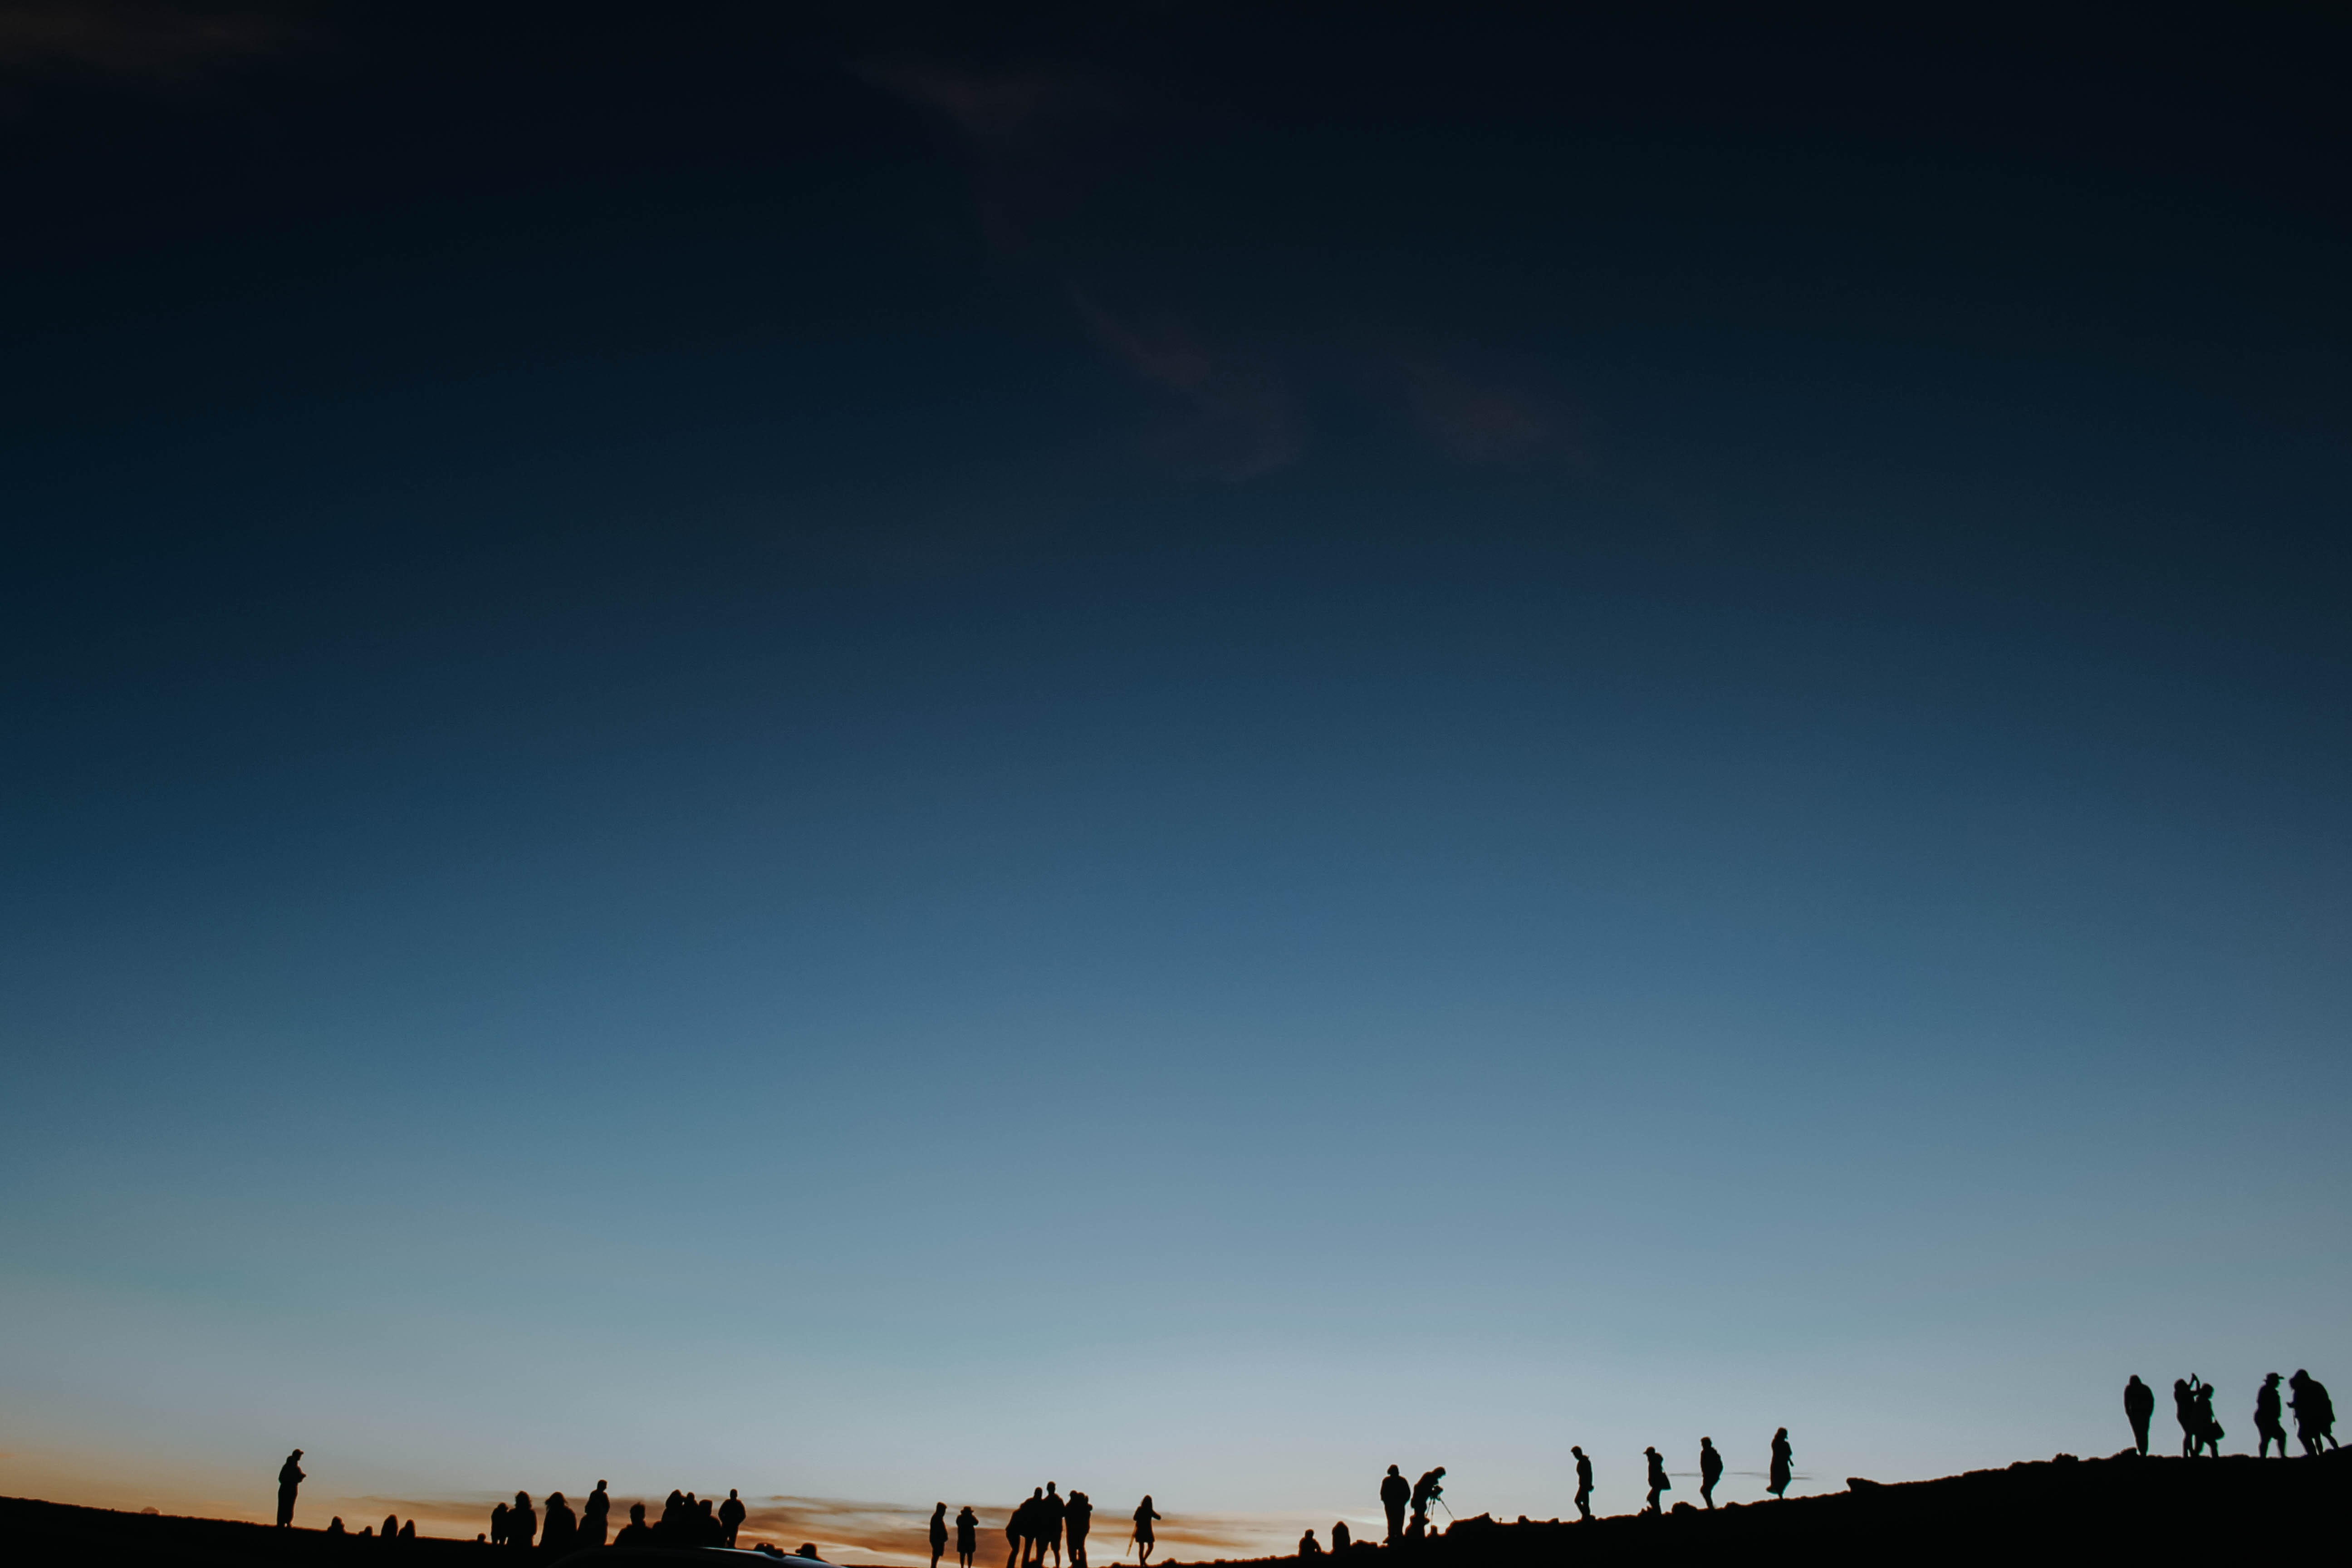 silhouette of people standing in cliff